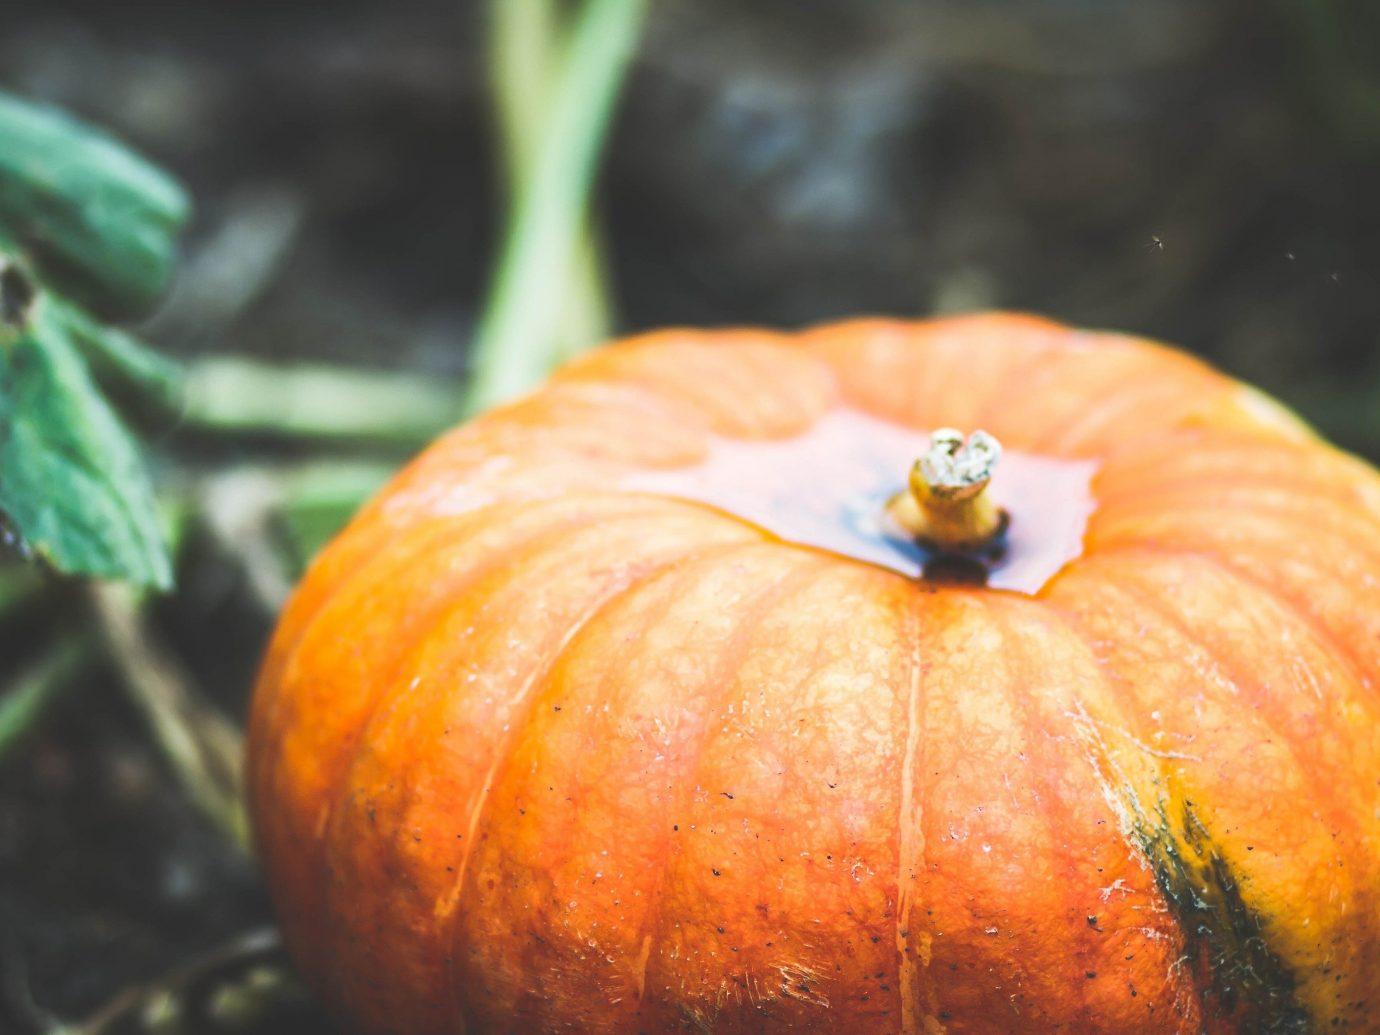 Trip Ideas squash fruit plant pumpkin winter squash close up calabaza macro photography produce autumn land plant leaf flower food cucurbita gourd plant stem vegetable flowering plant close